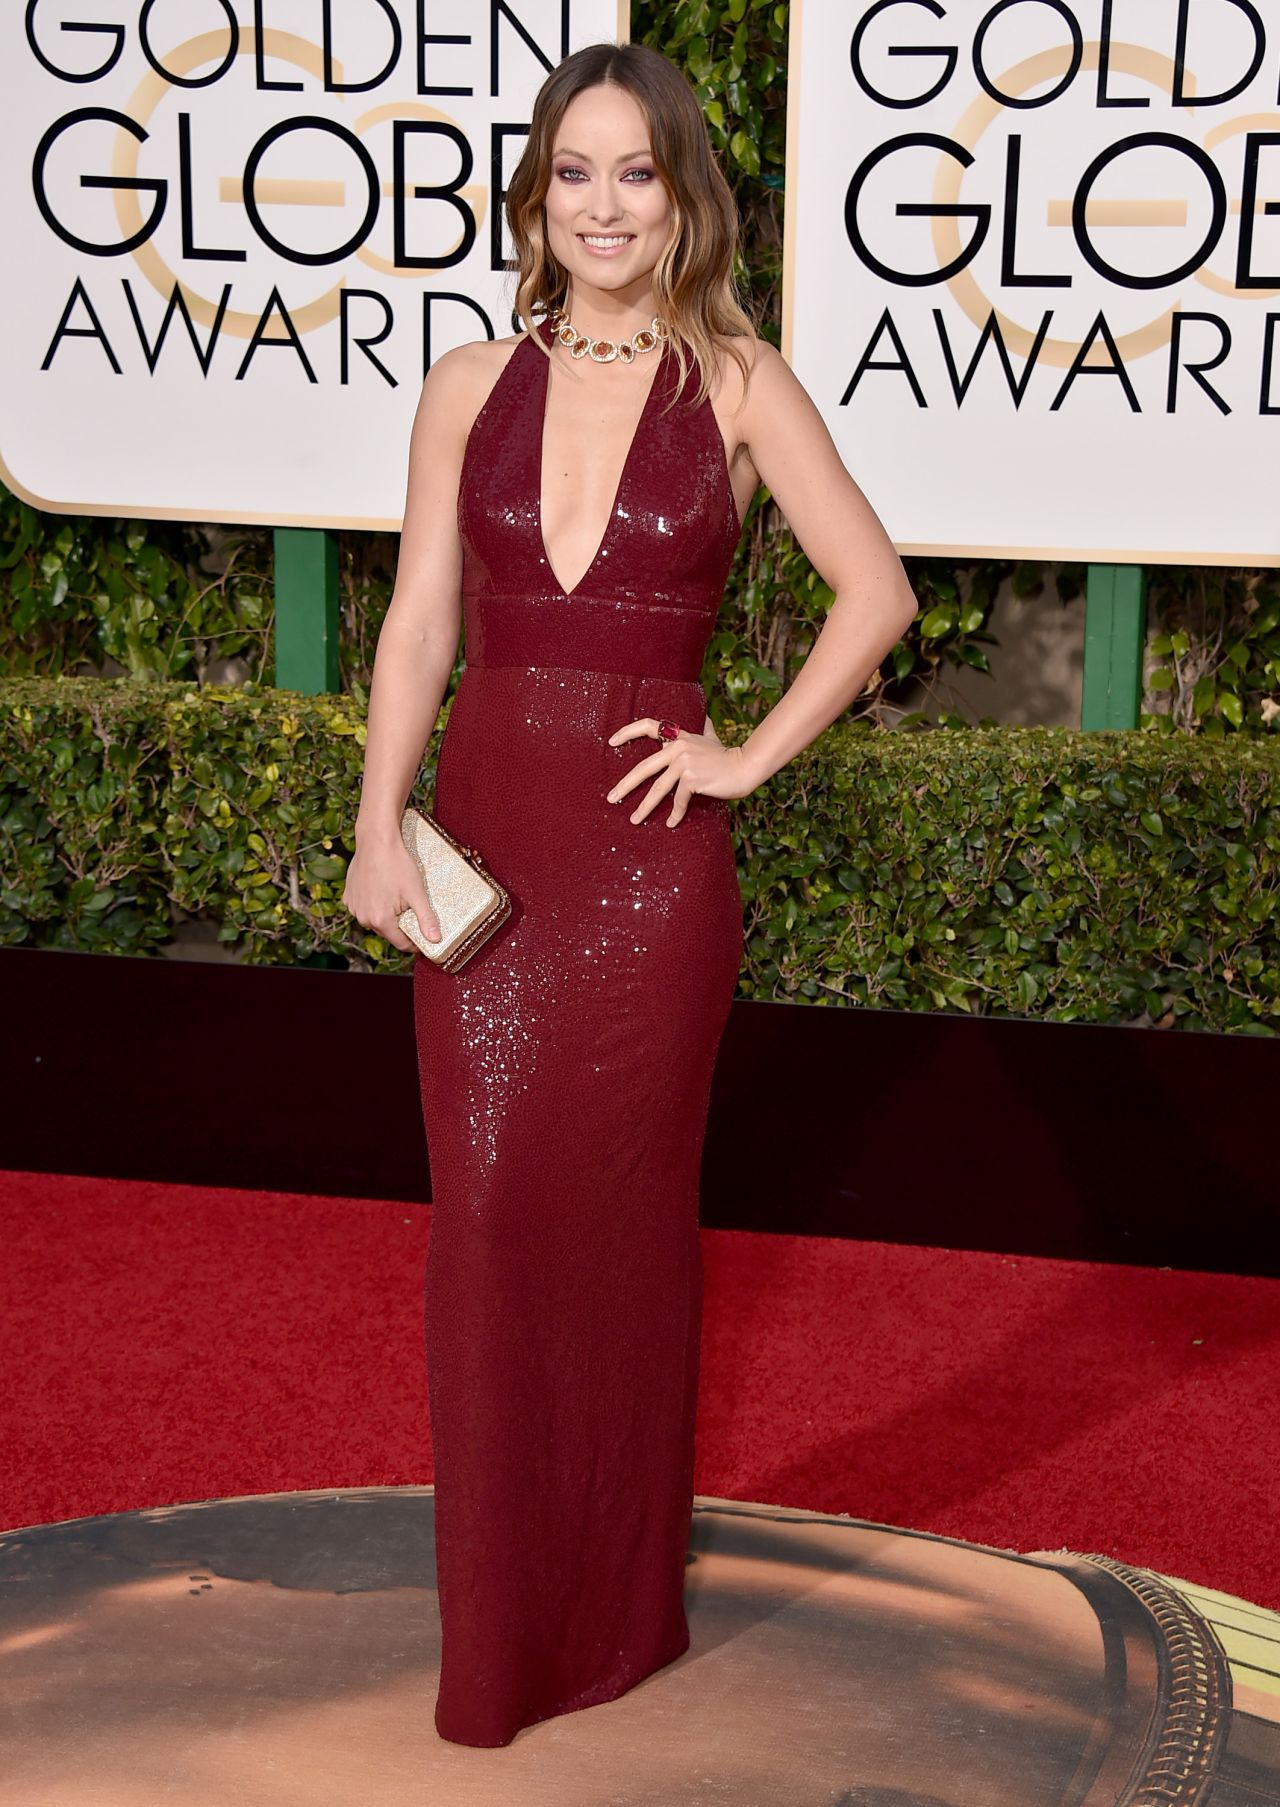 olivia-wilde-2016-golden-globe-awards-in-beverly-hills-2